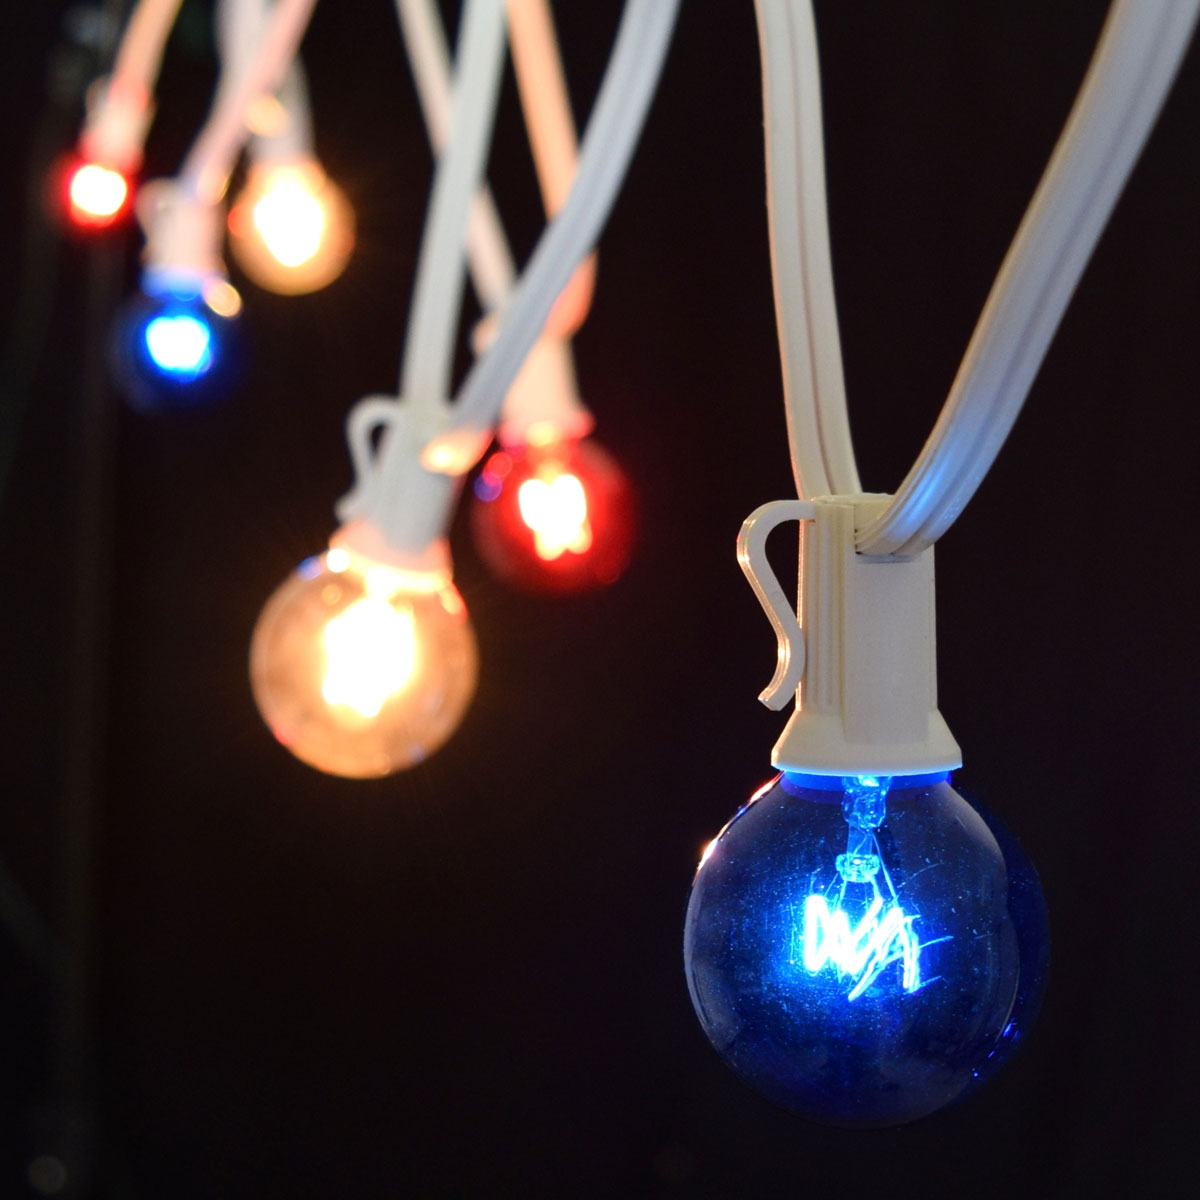 Globe String Lights White Cord : C7 Patriotic Globe String Lights - 50 White Light Strand